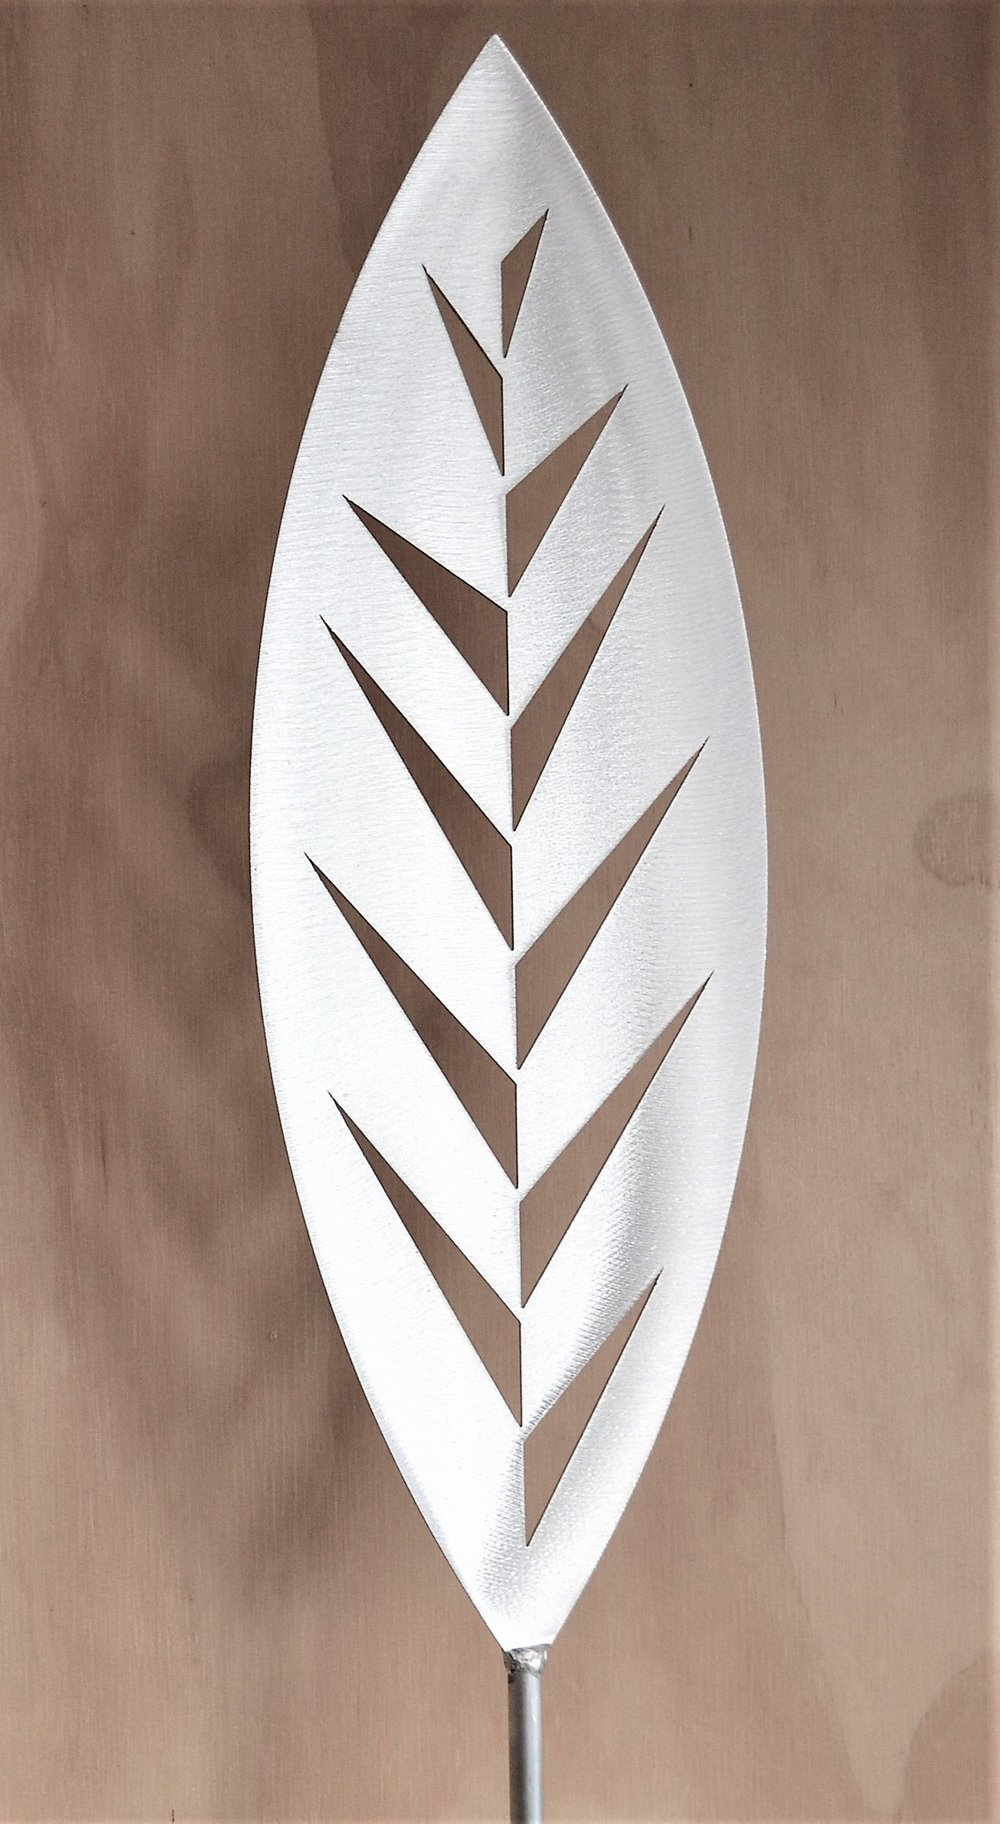 'Rise and Shine' Leaf  Grounded Art NZ, aluminium, 1650mm tall (400mm spear head on a 1250mm rod)  sold